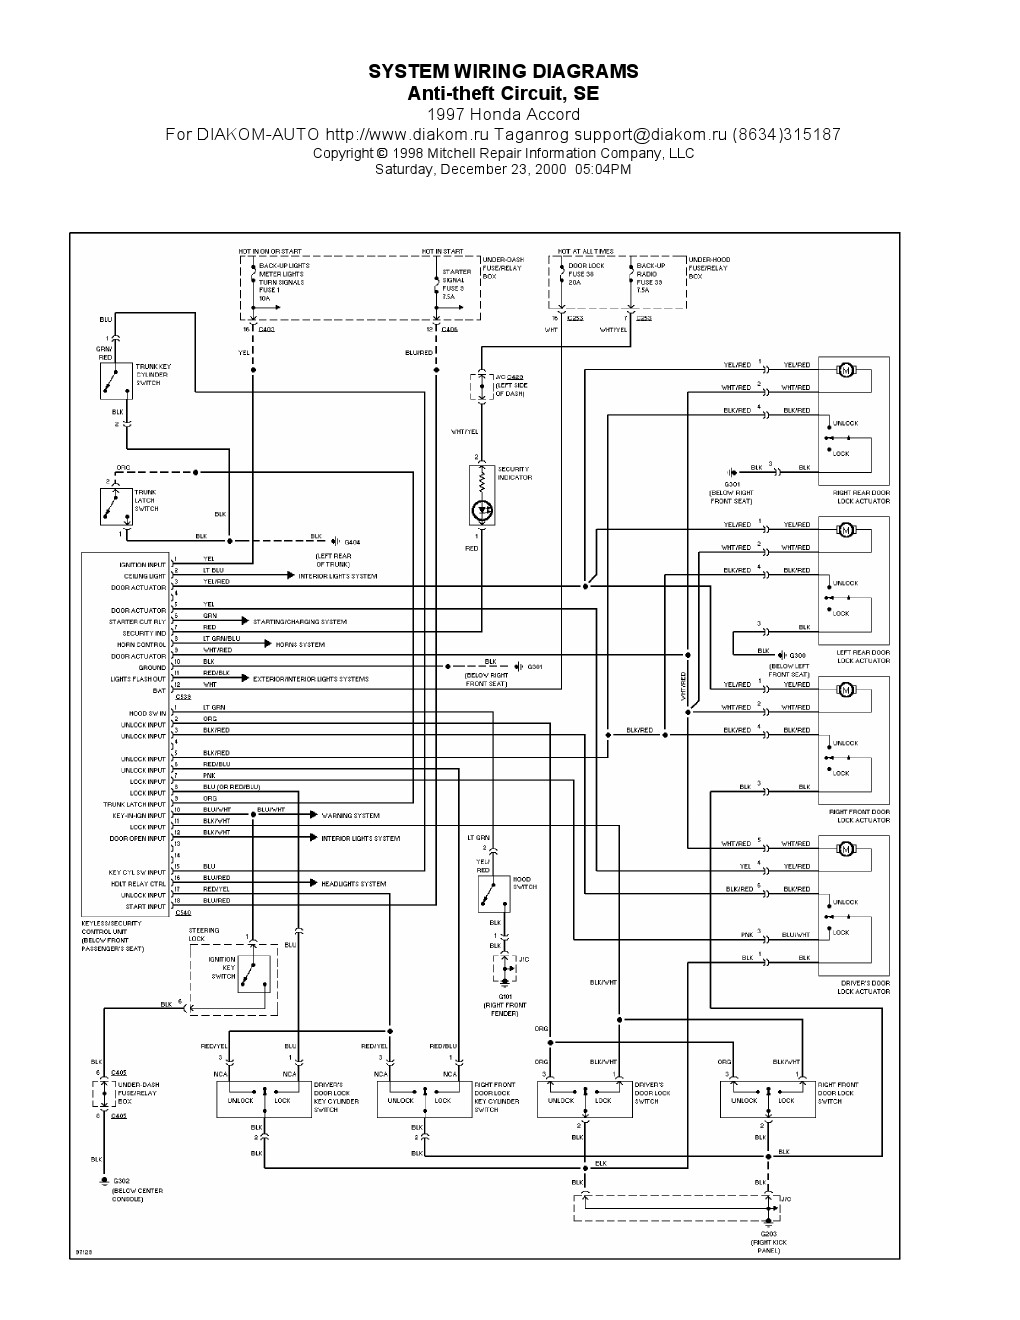 wiring diagram for 2000 honda accord 1997    honda       accord    anti theft circuit se  system    wiring     1997    honda       accord    anti theft circuit se  system    wiring